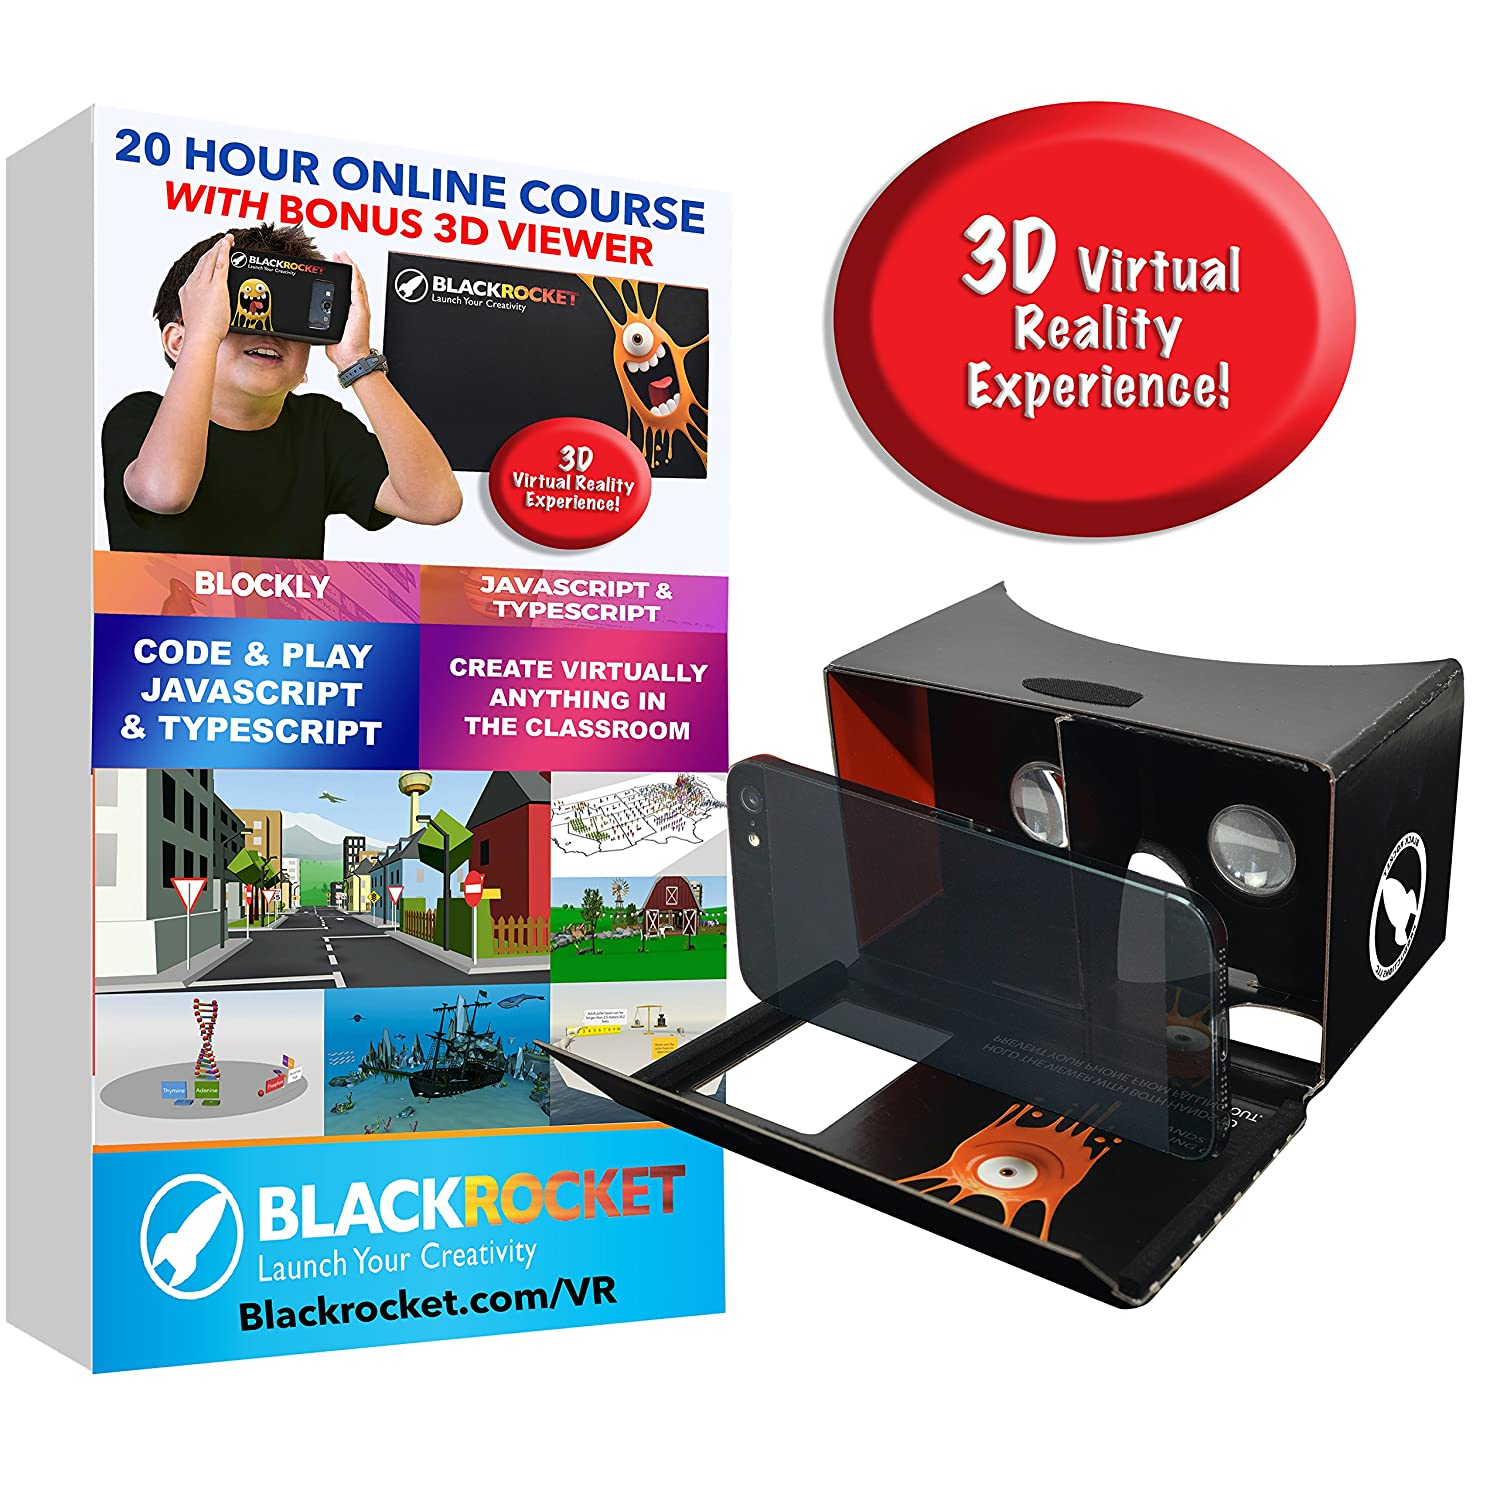 Make Your Own 3D Virtual Reality Games